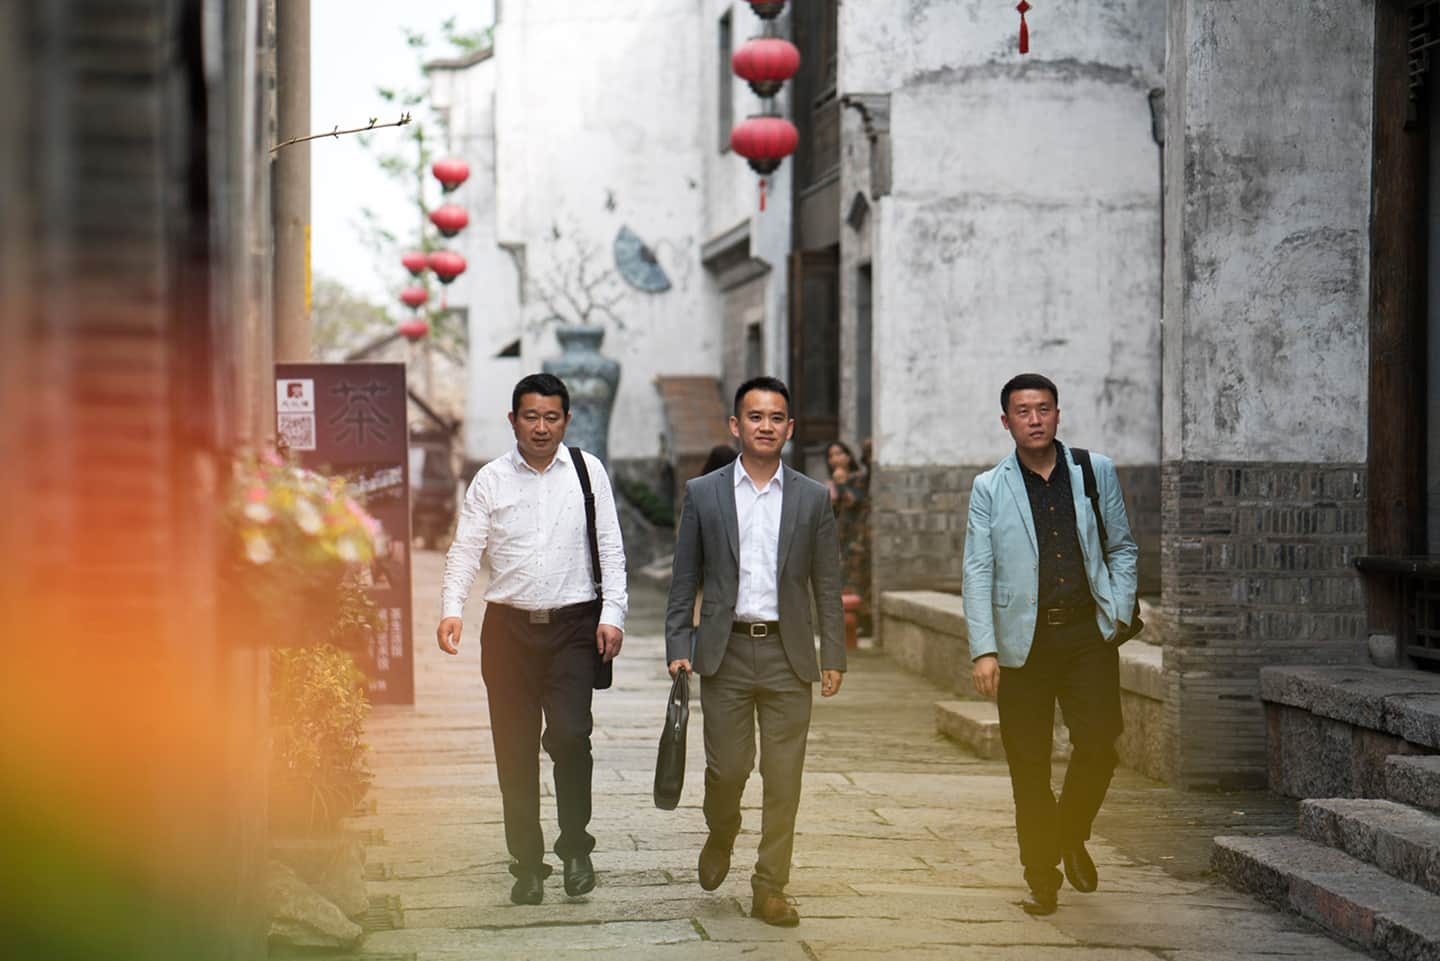 Changing life in Nanjing - Men walking